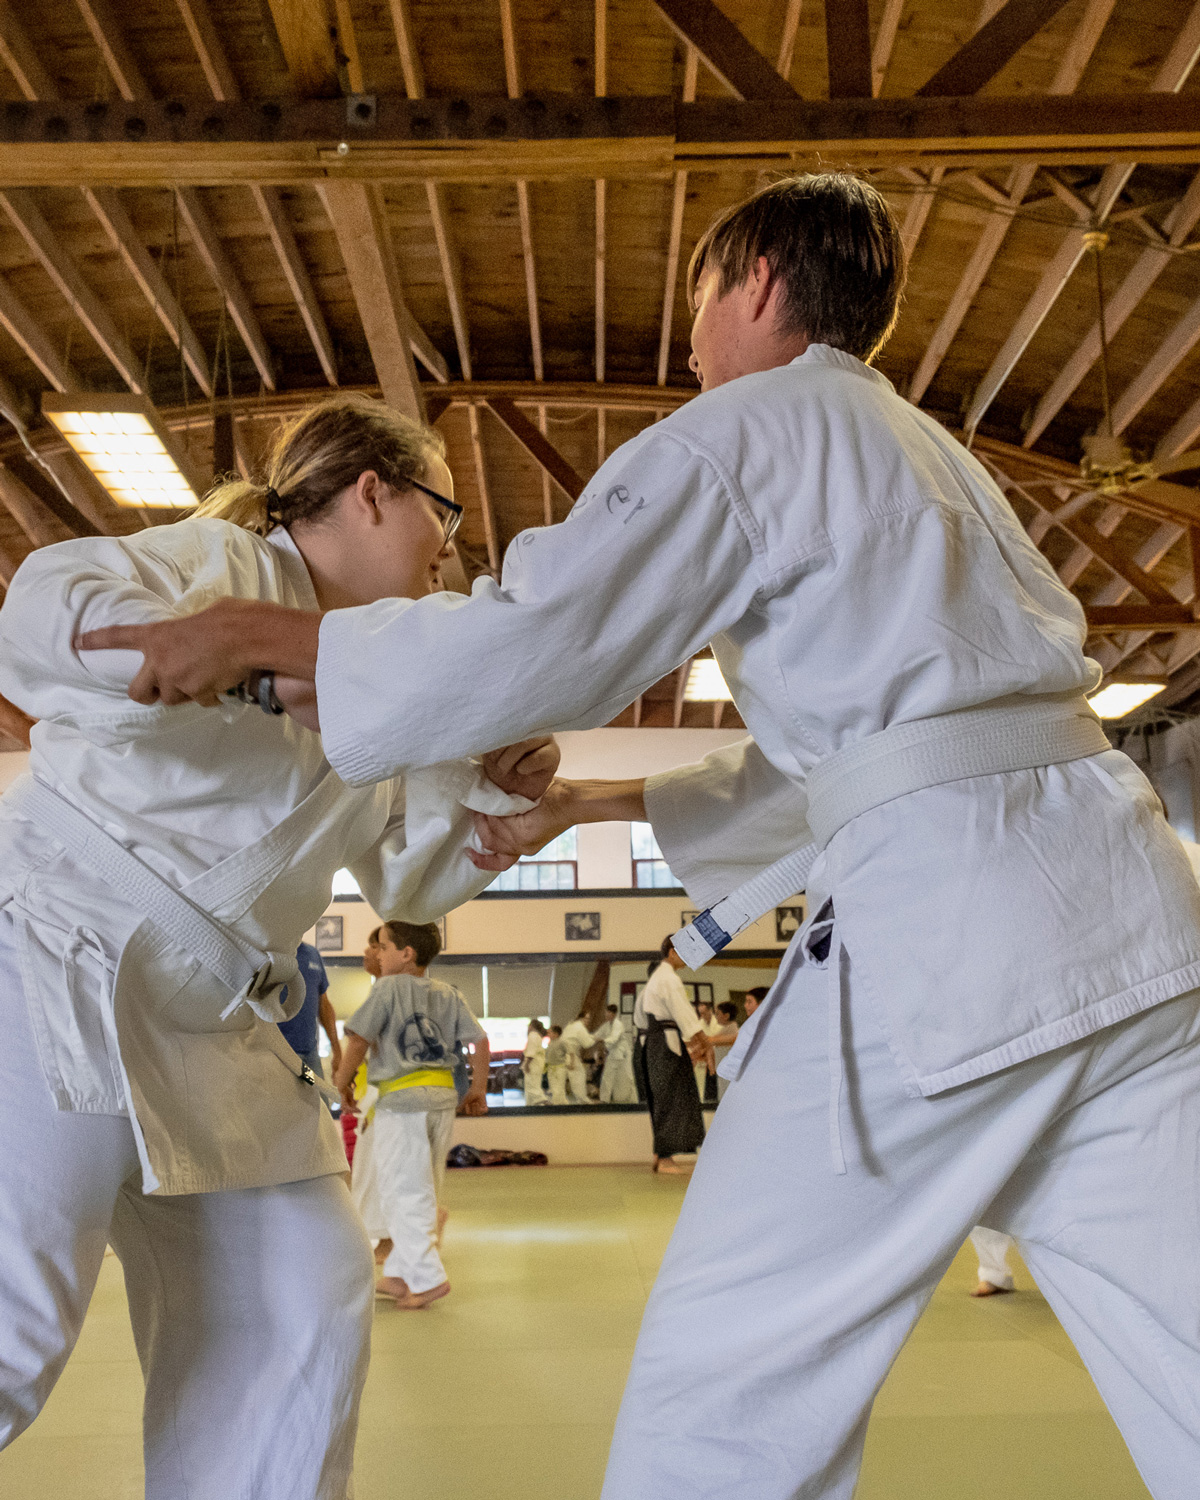 TEEN CLASS - Ages 12-17 are crucial in a child's development. As they make the transition to adulthood, they face a variety of challenges. From societal influences to overwhelming physical and emotional growth, it's a great time for them to tap into their calm, powerful inner strength.Aikido provides a venue unlike any other to learn how to take risks, expand their comfort zone, and learn about their self as well as others.Stepping on the mat and practicing aikido gives teens a break from the fast-paced, high-tech, instant gratification world. Here, they develop skills to settle, ground and be a positive force in the world. Call us today to schedule a time to come down.